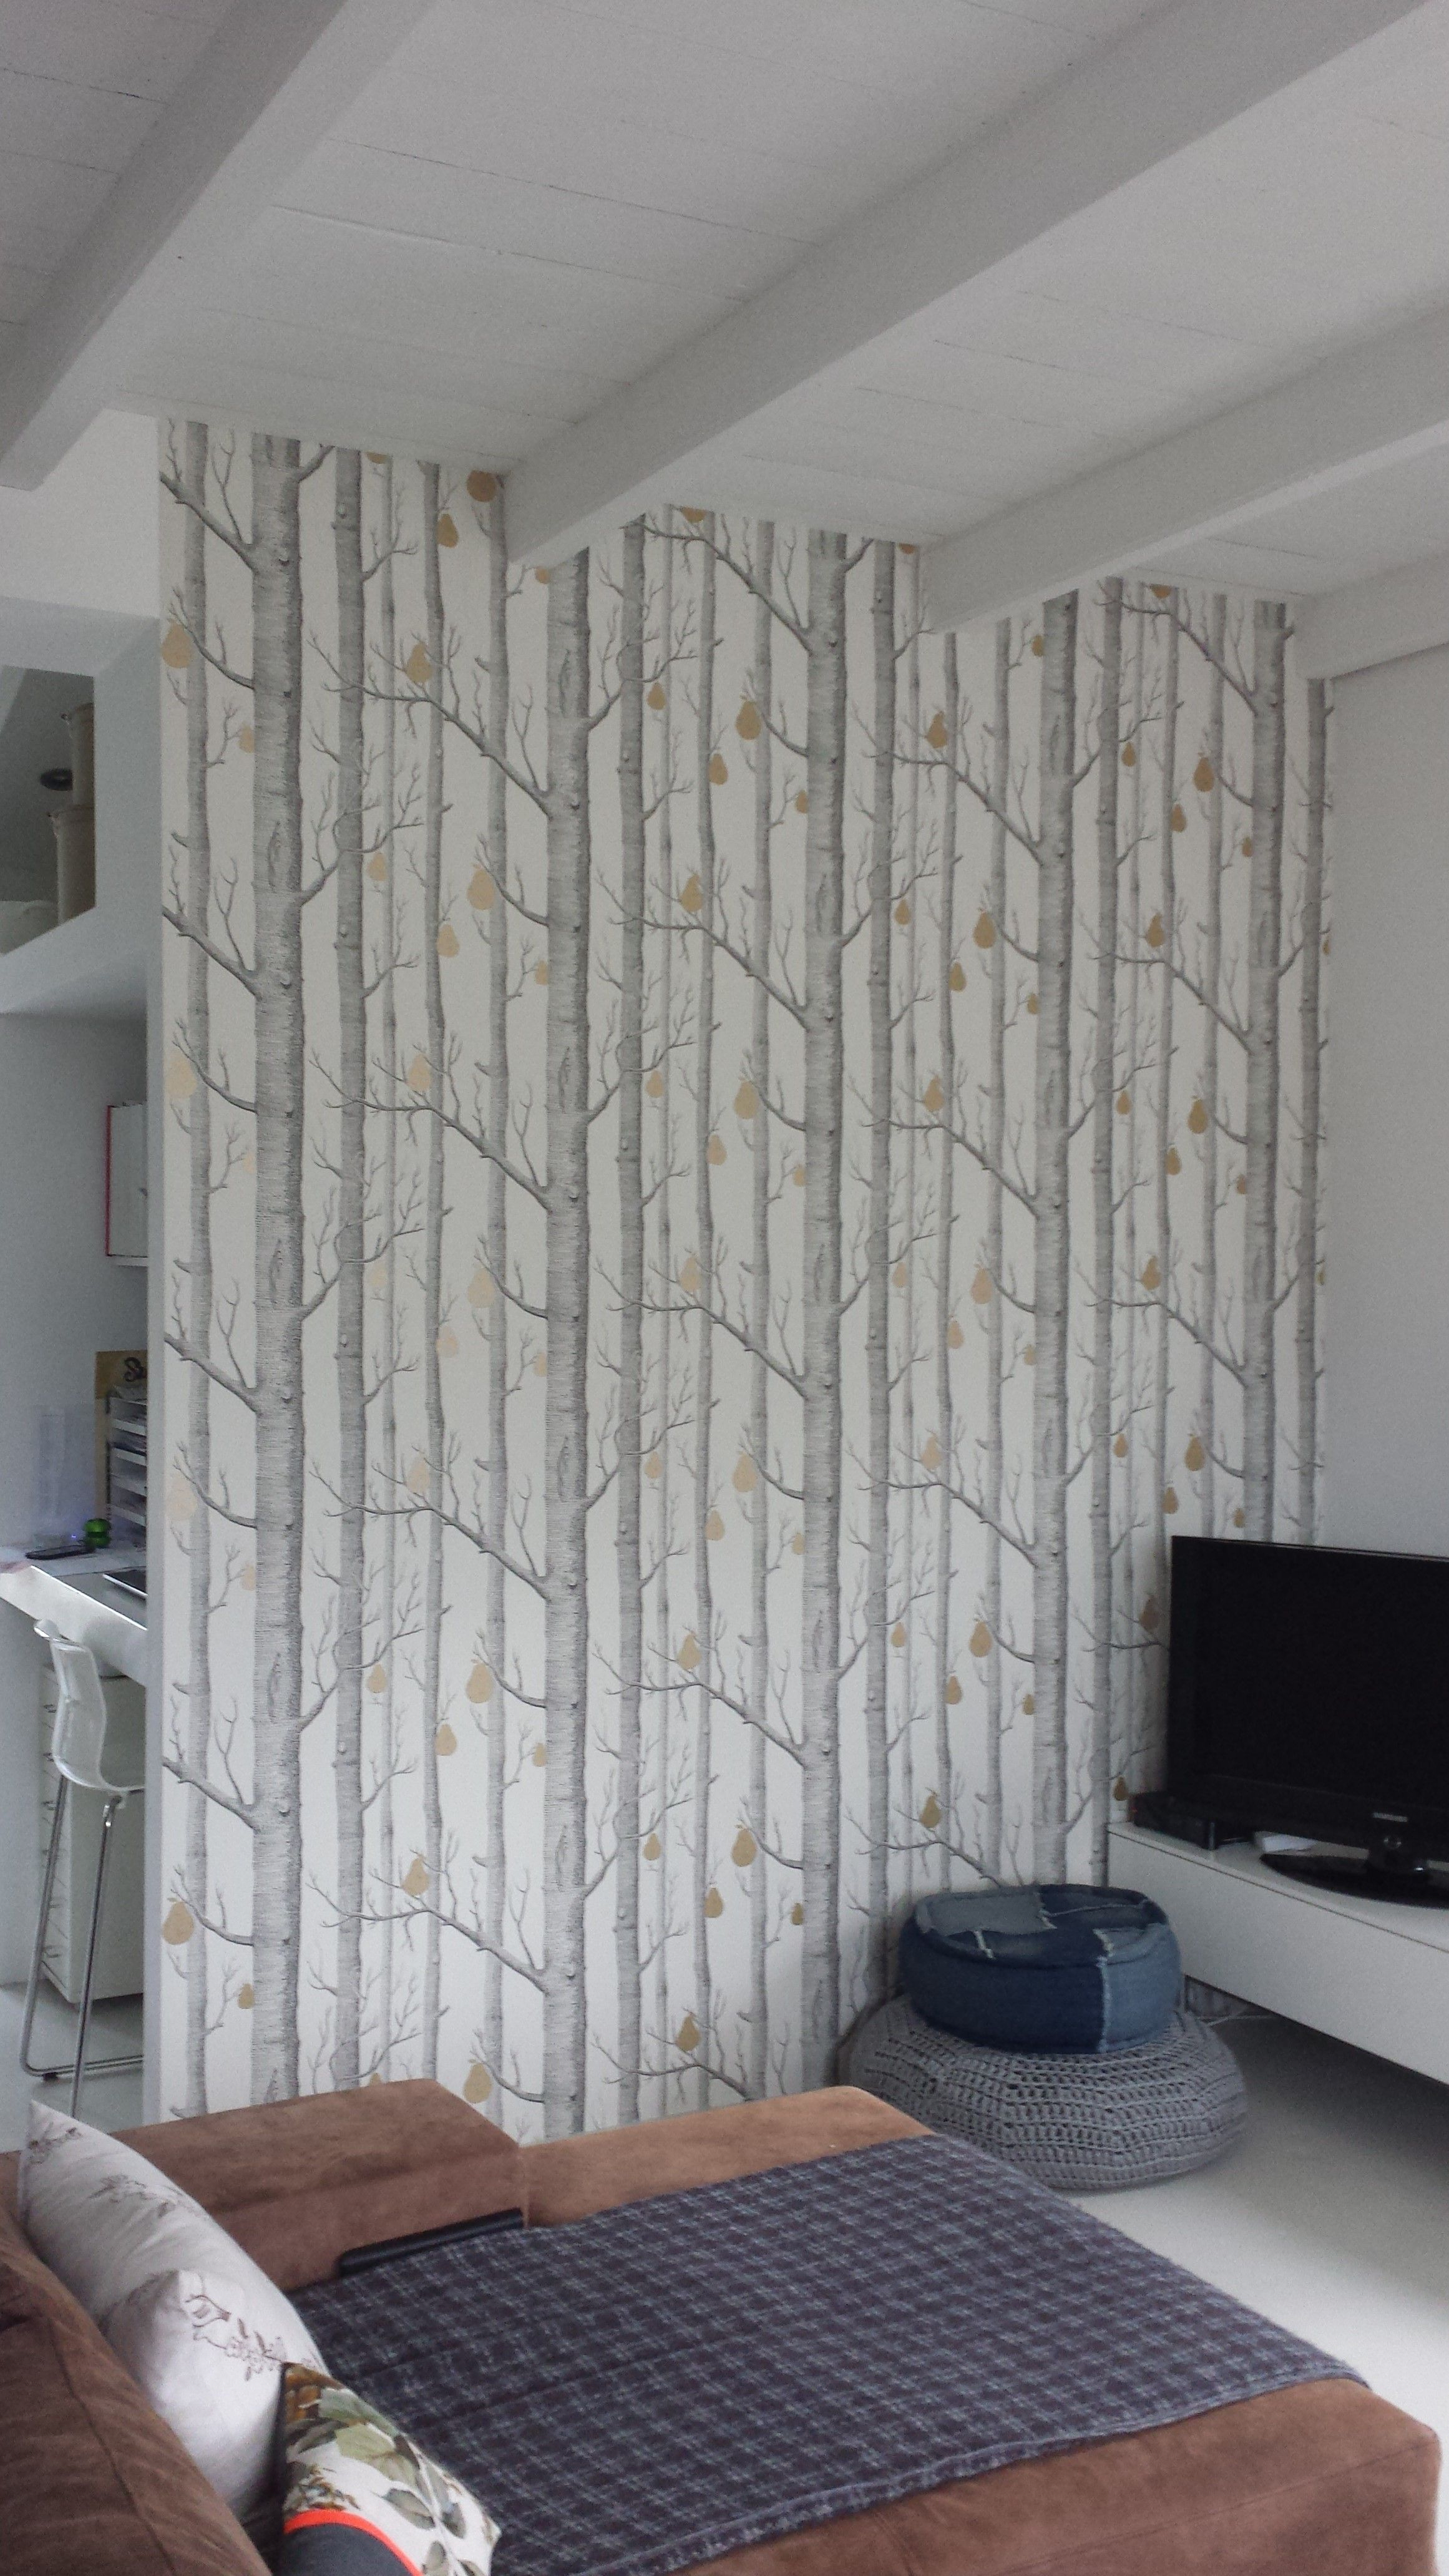 wallpaper Woods Pears from Cole Son Home makeover in 2019 2322x4128